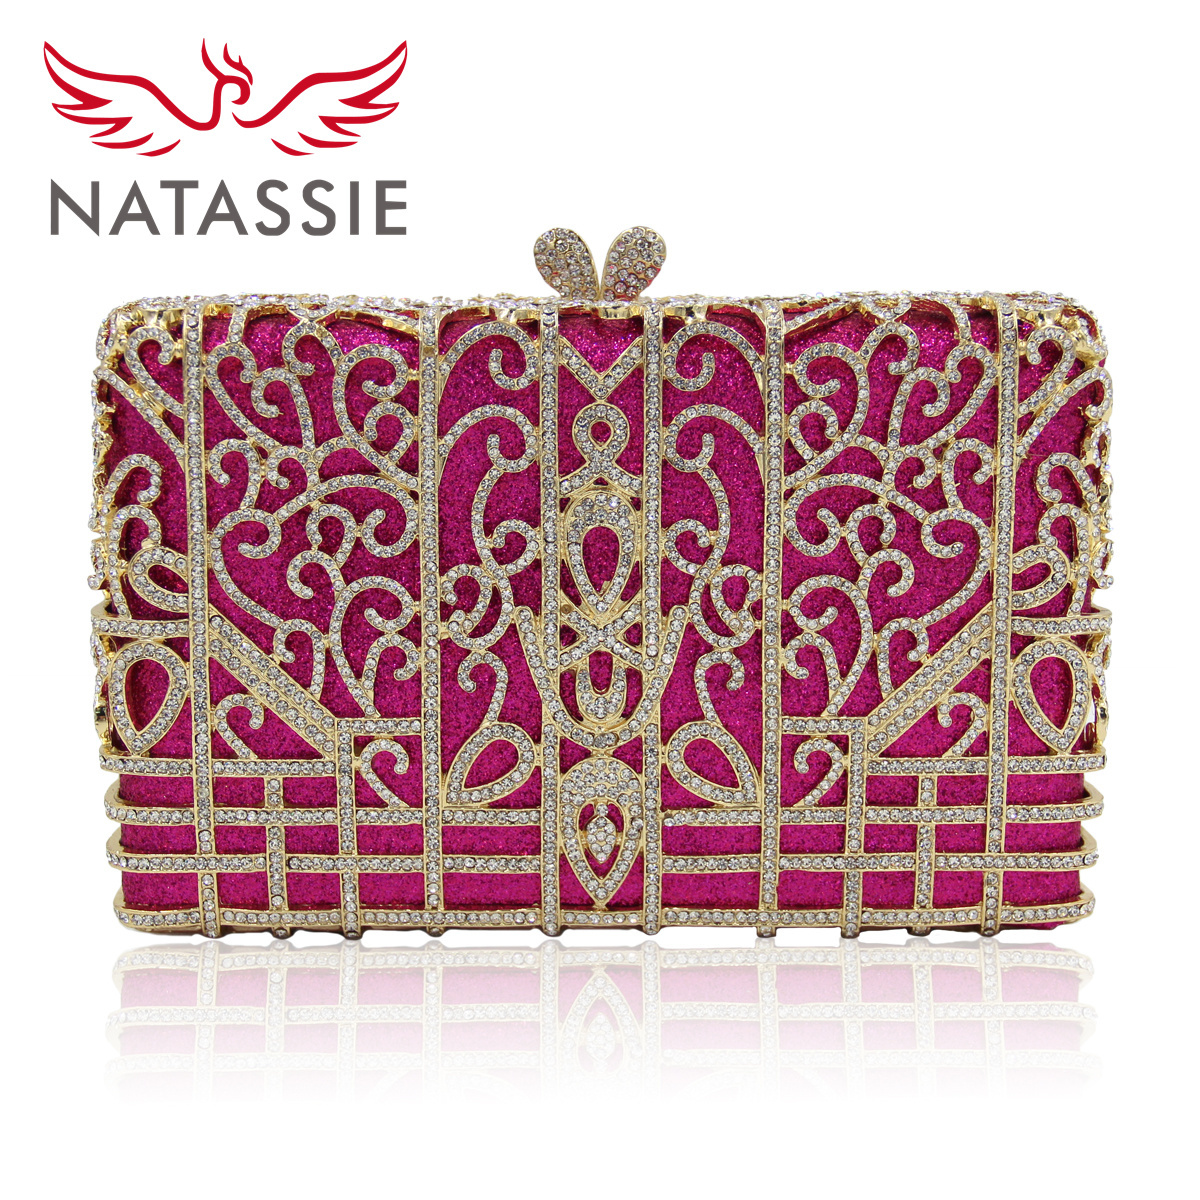 NATASSIE Women Evening Bags New Fashion Ladies Wedding Purses High Quality Peach Design Crystal Bags Female Day Clutches Purse natassie new design luxury crystal clutch women evening bag gold red ladies wedding banquet party purses good quality